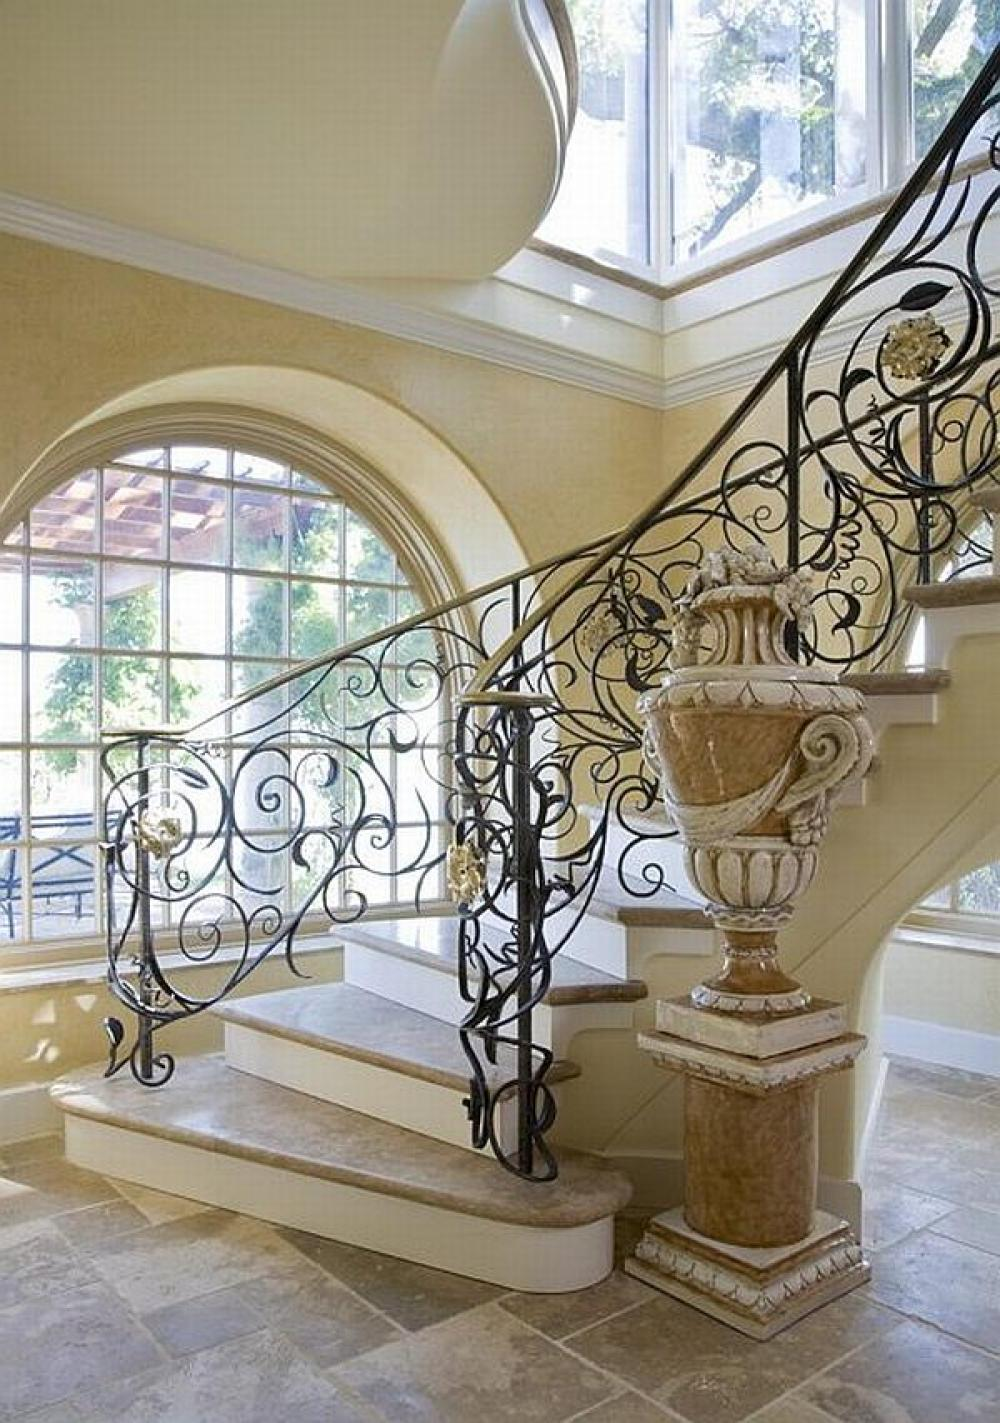 Wrought Iron Originals Iron Railings For Stairs Buy